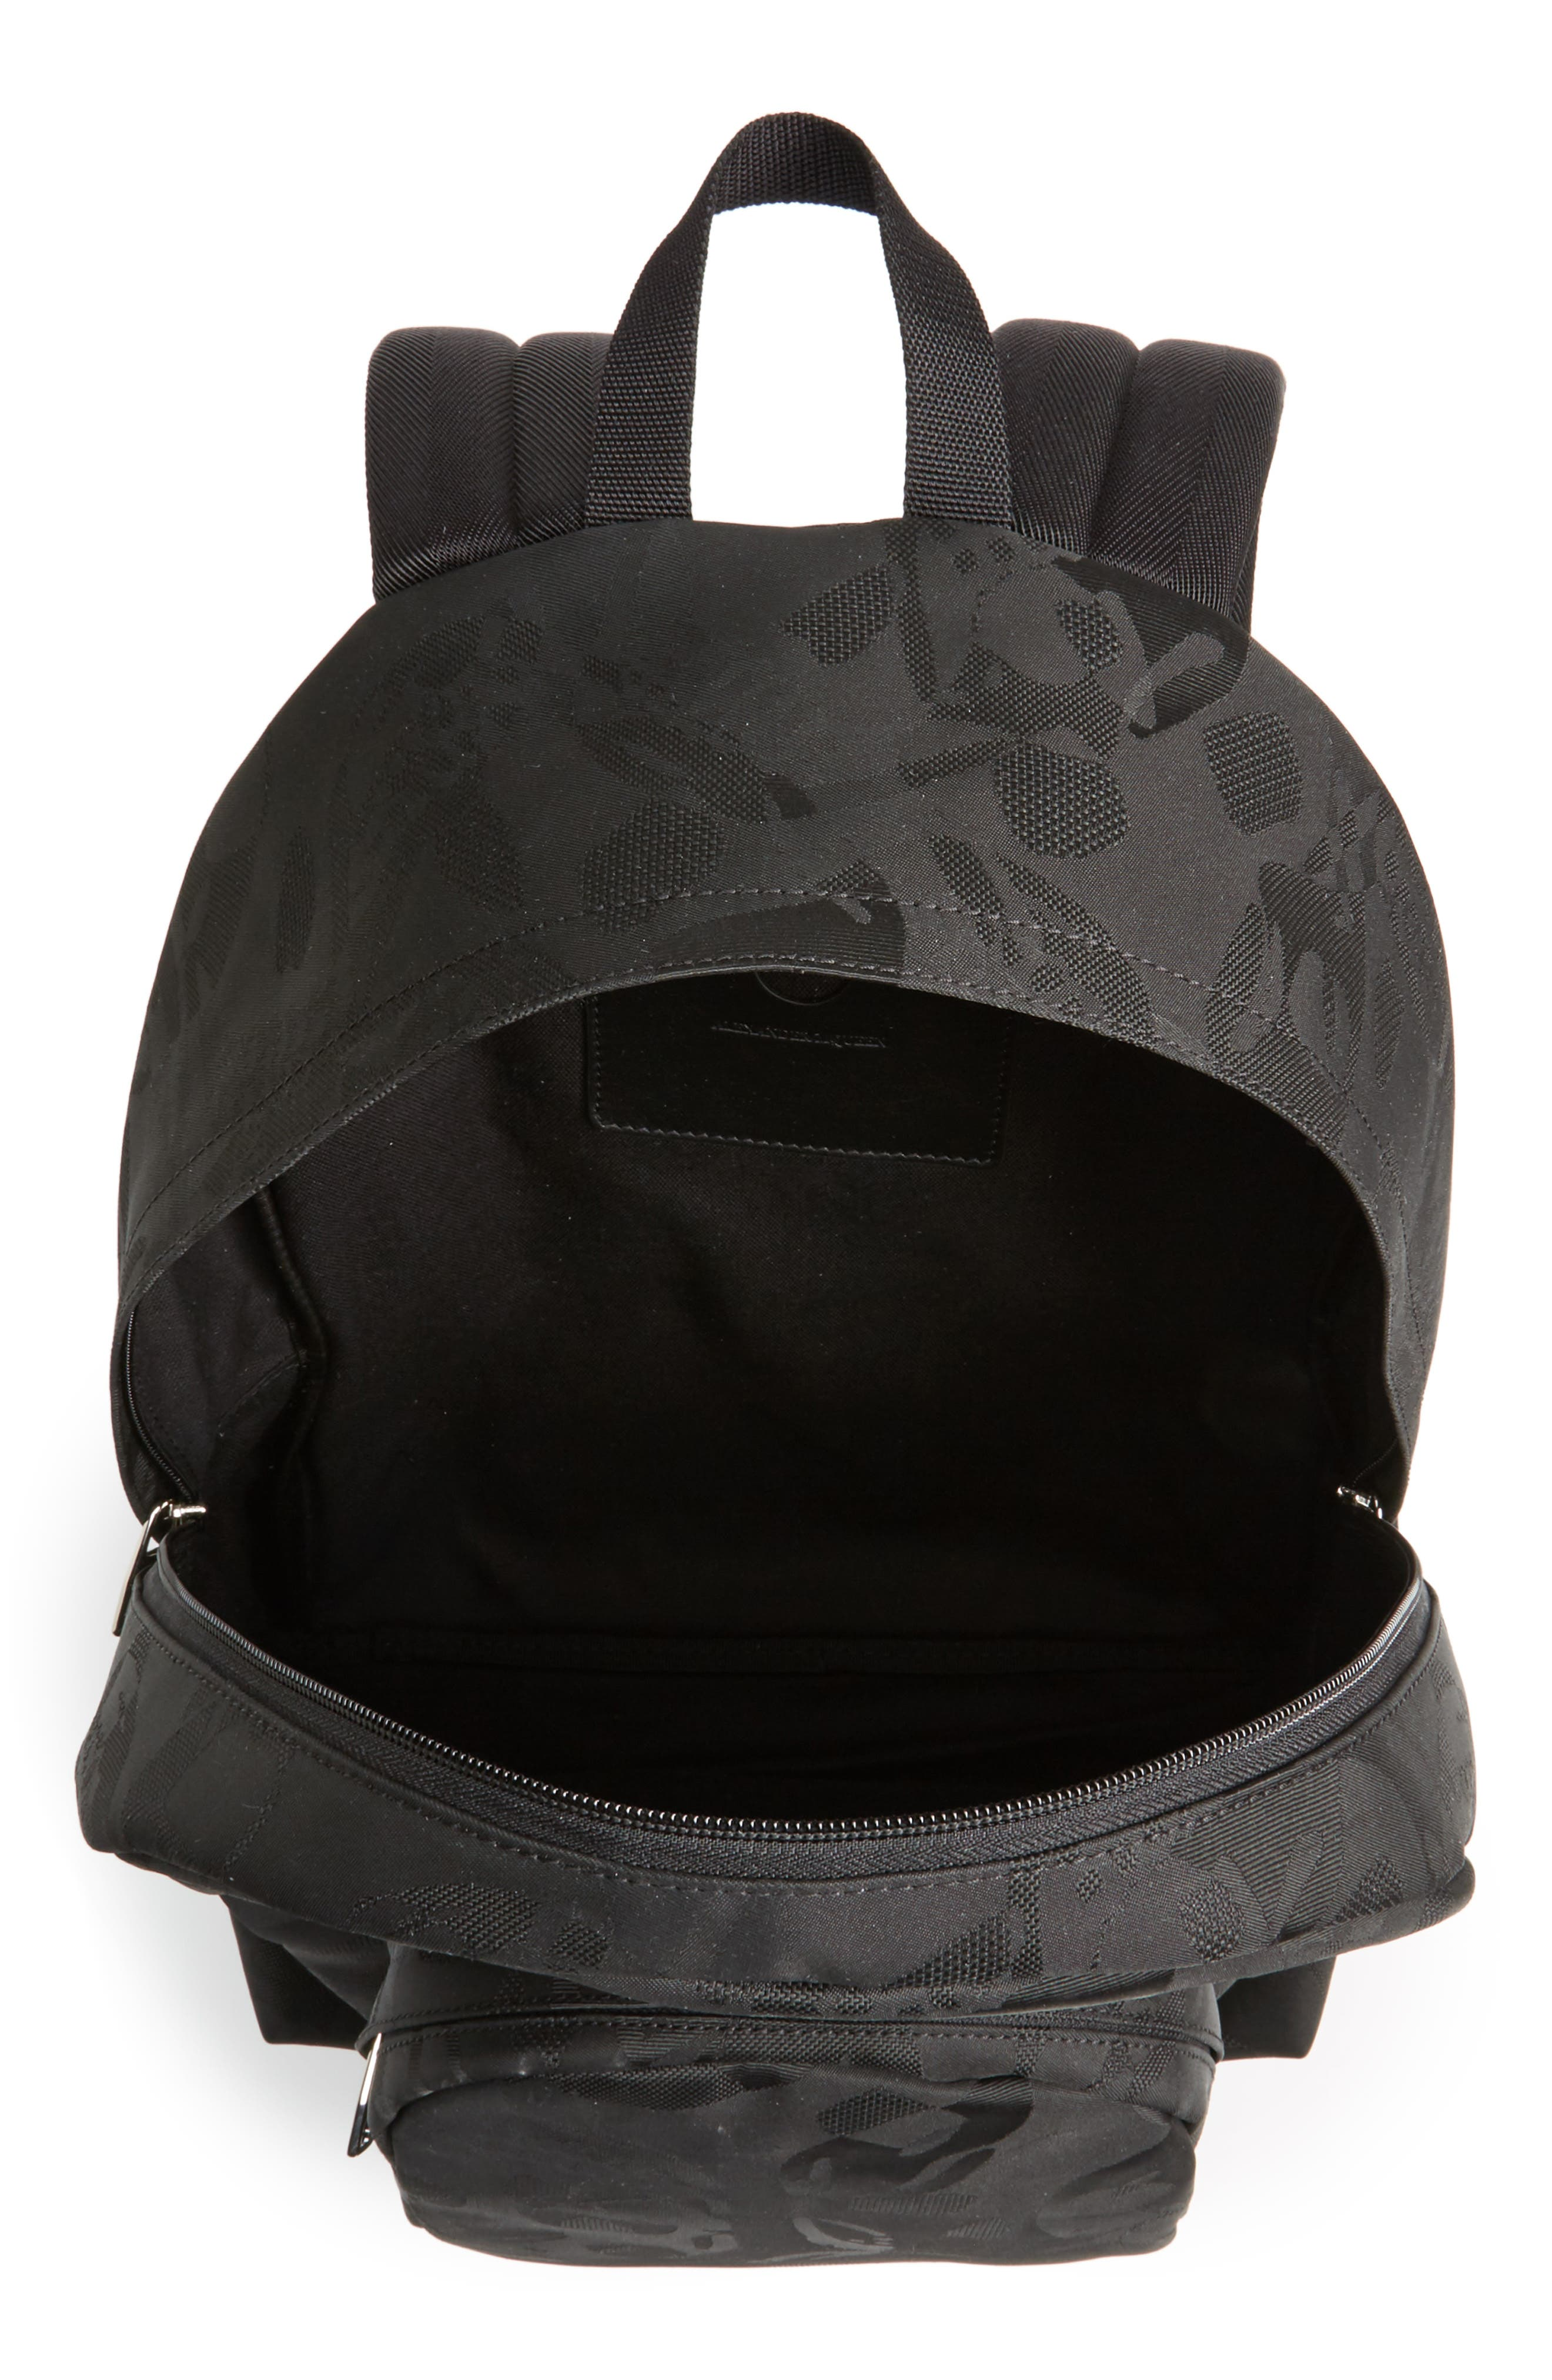 Small Backpack,                             Alternate thumbnail 4, color,                             001